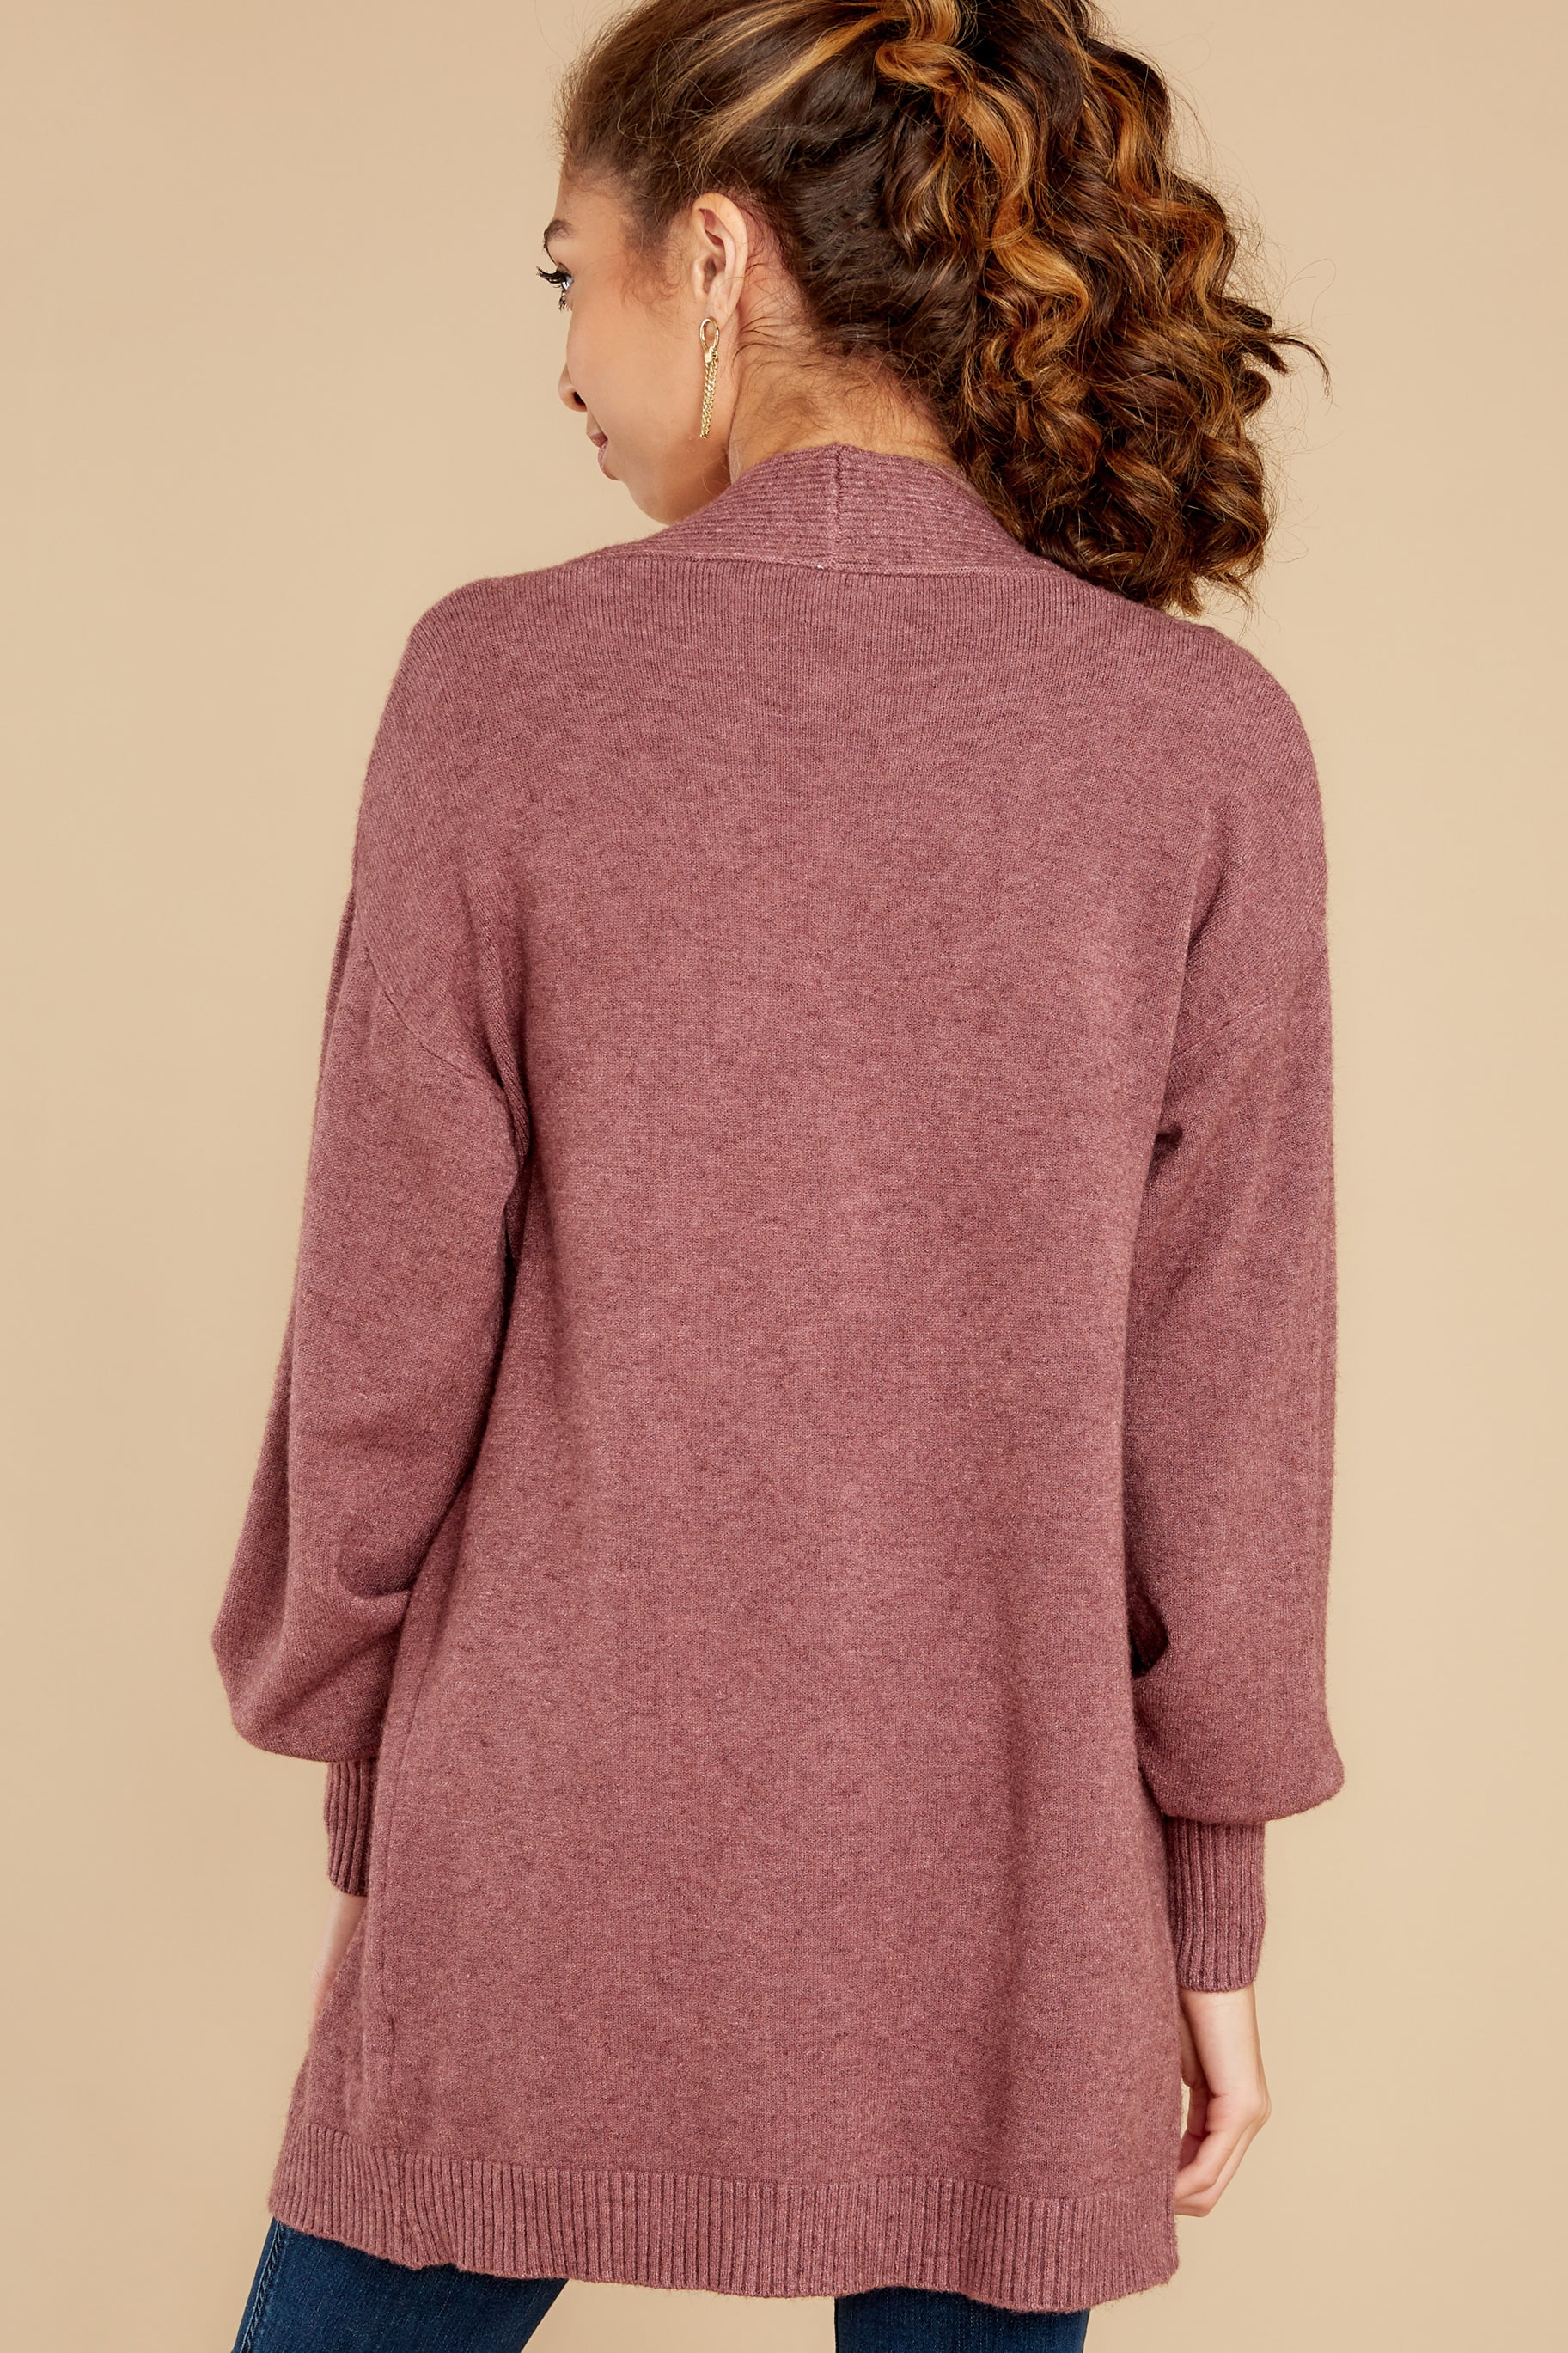 9 Closely Watching Raspberry Cardigan at reddress.com